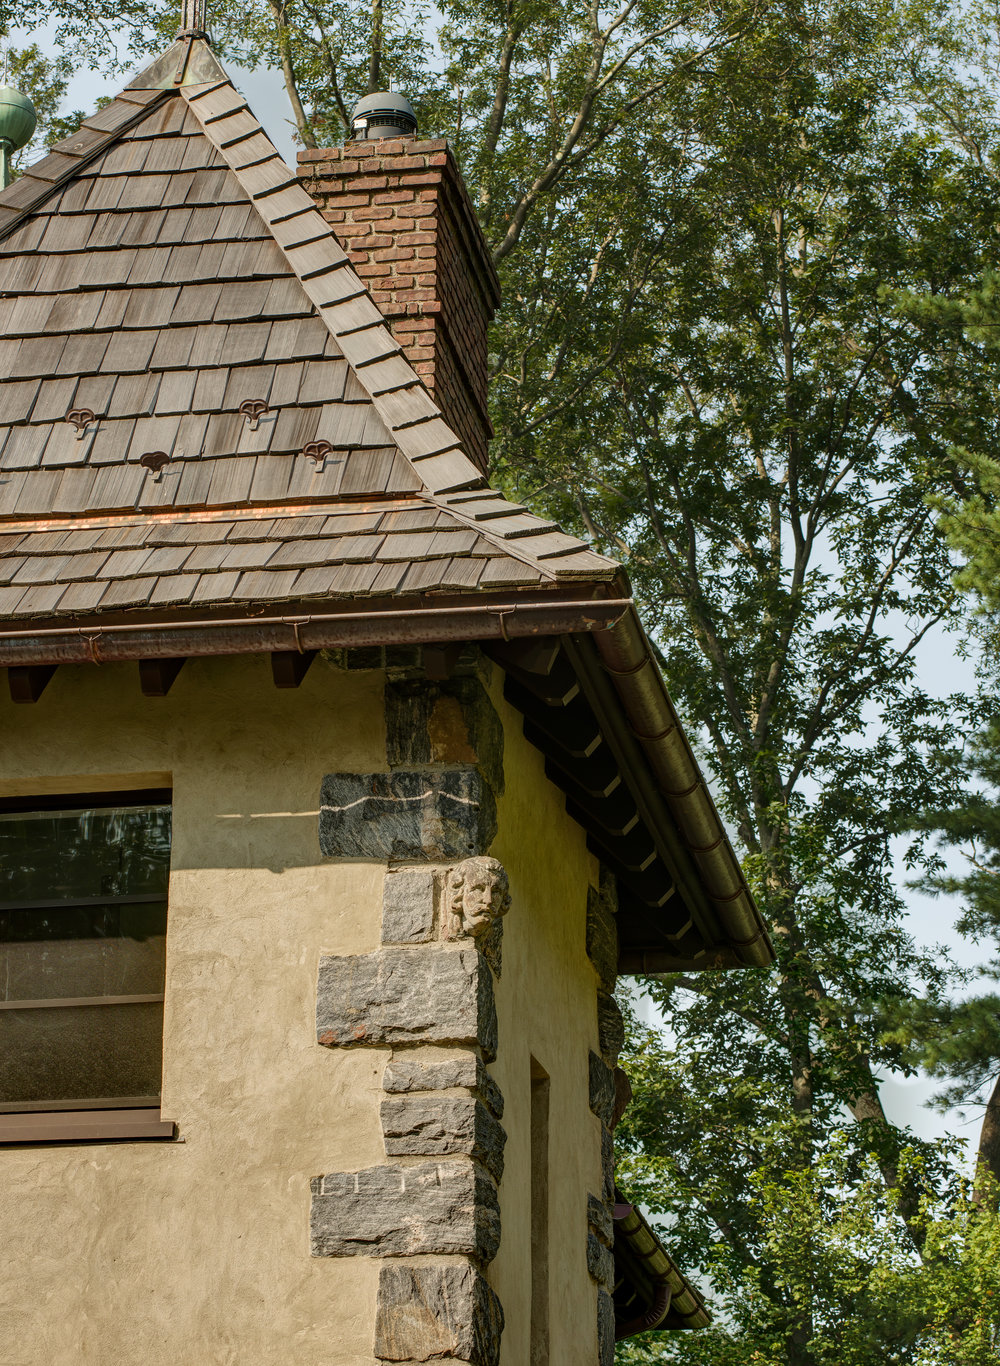 slate shingles brick chimney stone belfry bell tower